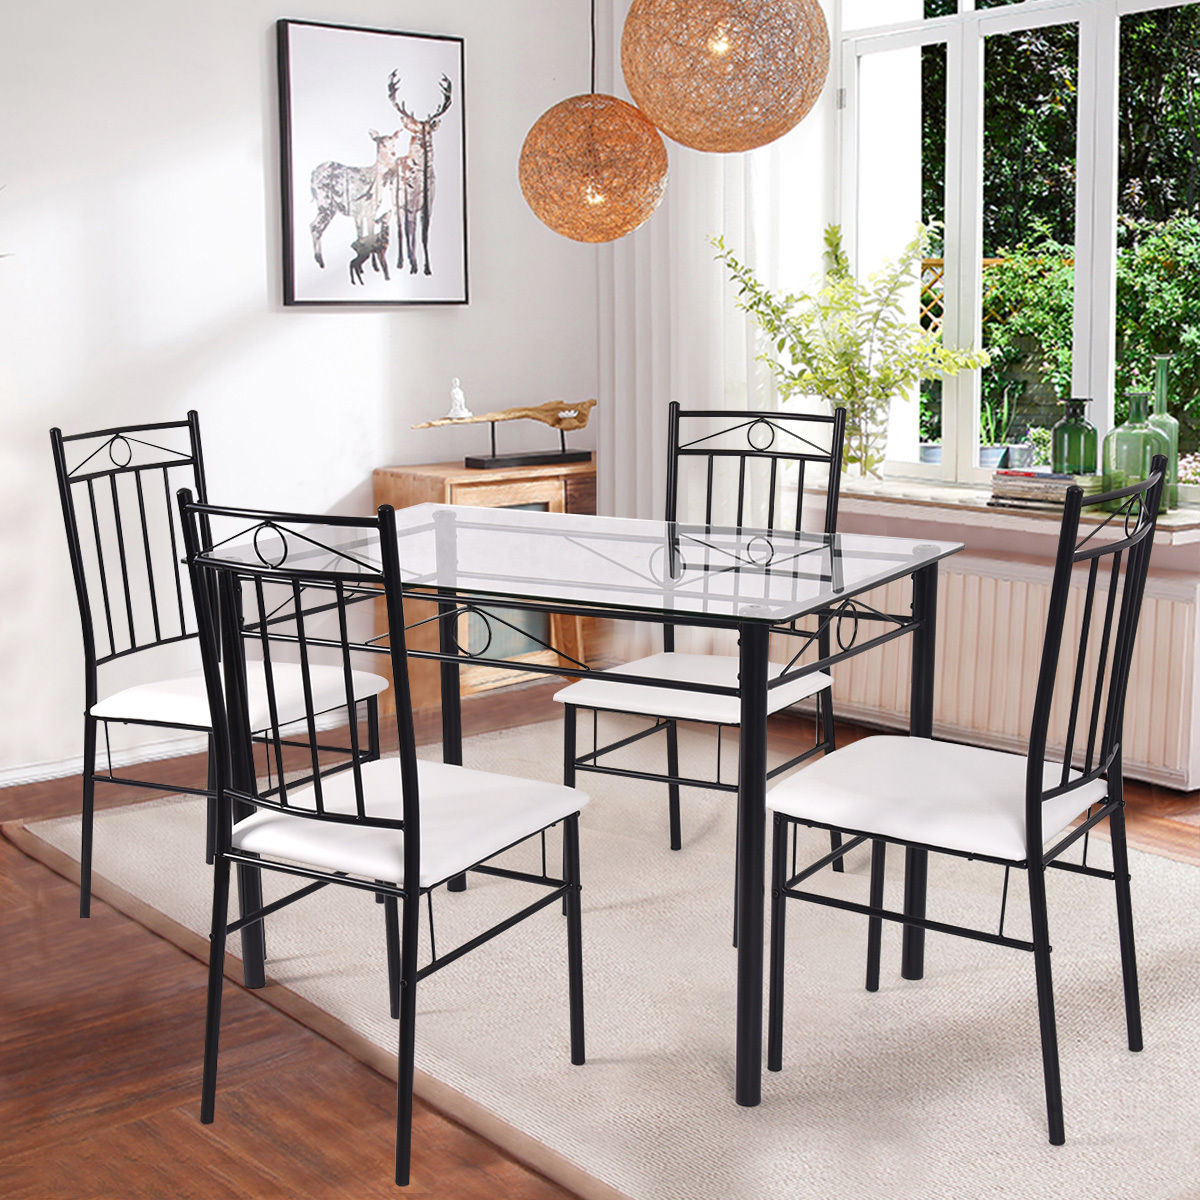 breakfast furniture sets. Costway 5 Piece Dining Set Glass Metal Table And 4 Chairs Kitchen Breakfast Furniture Sets